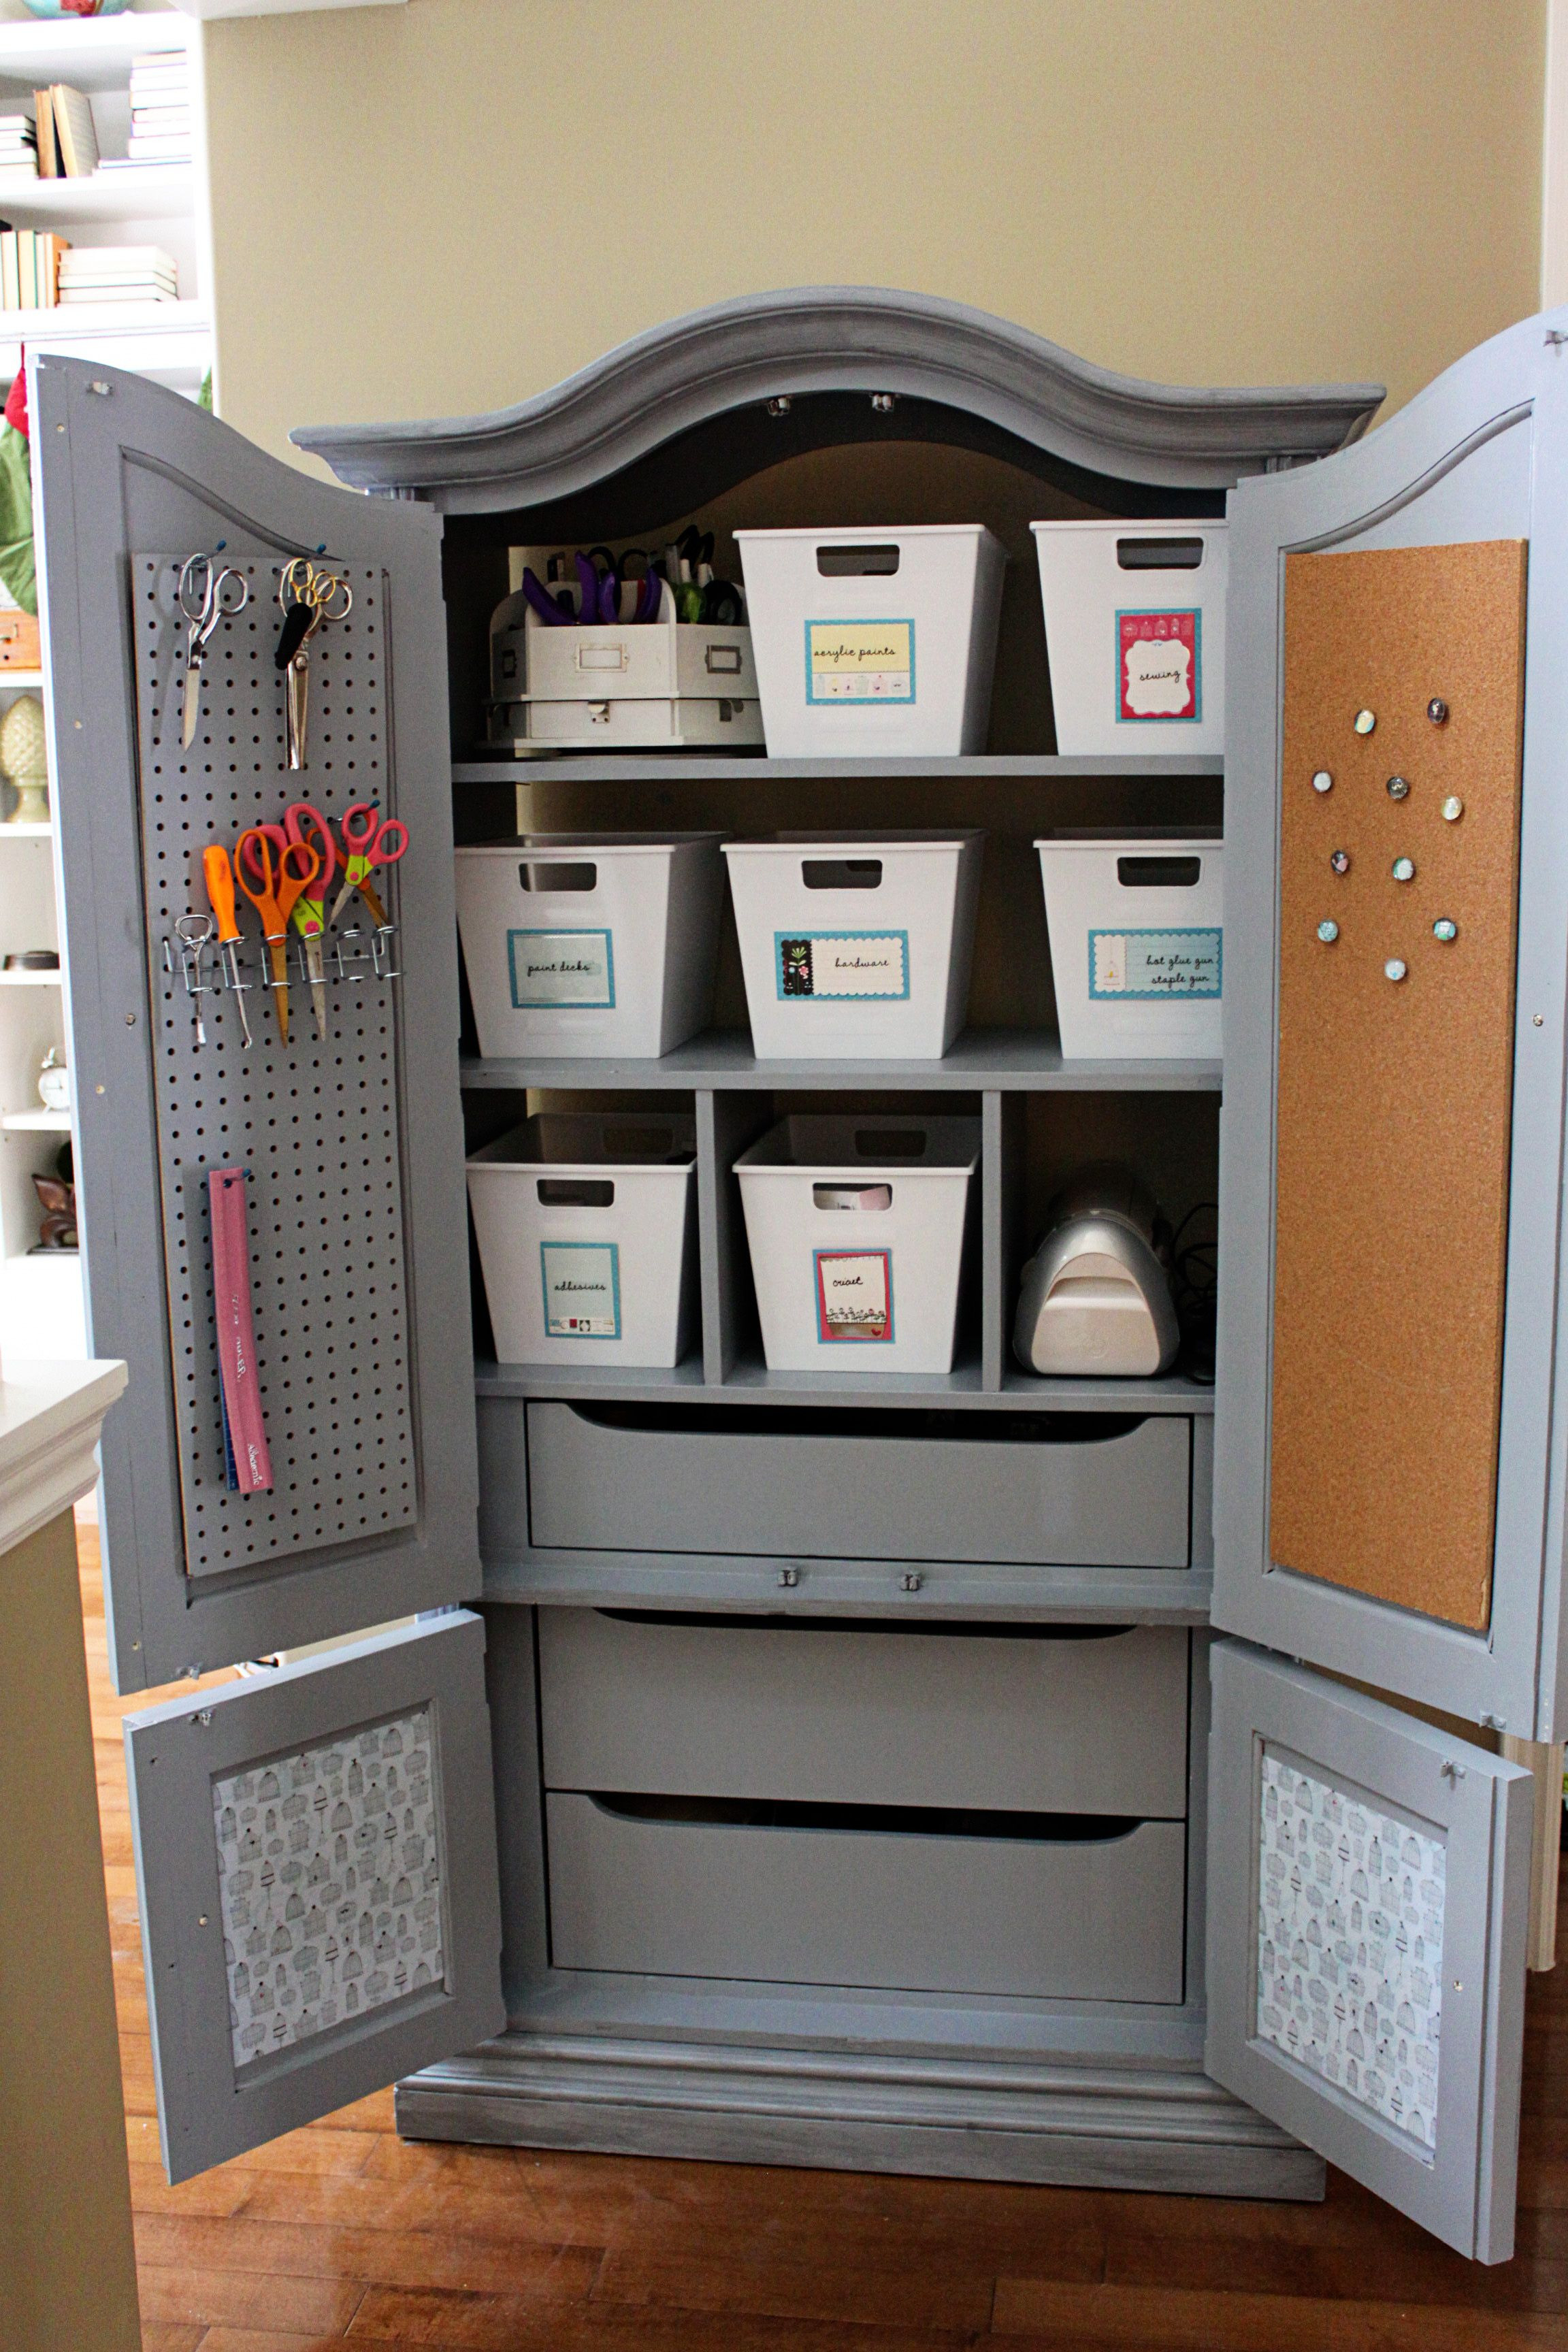 Armoire with shelves and drawers